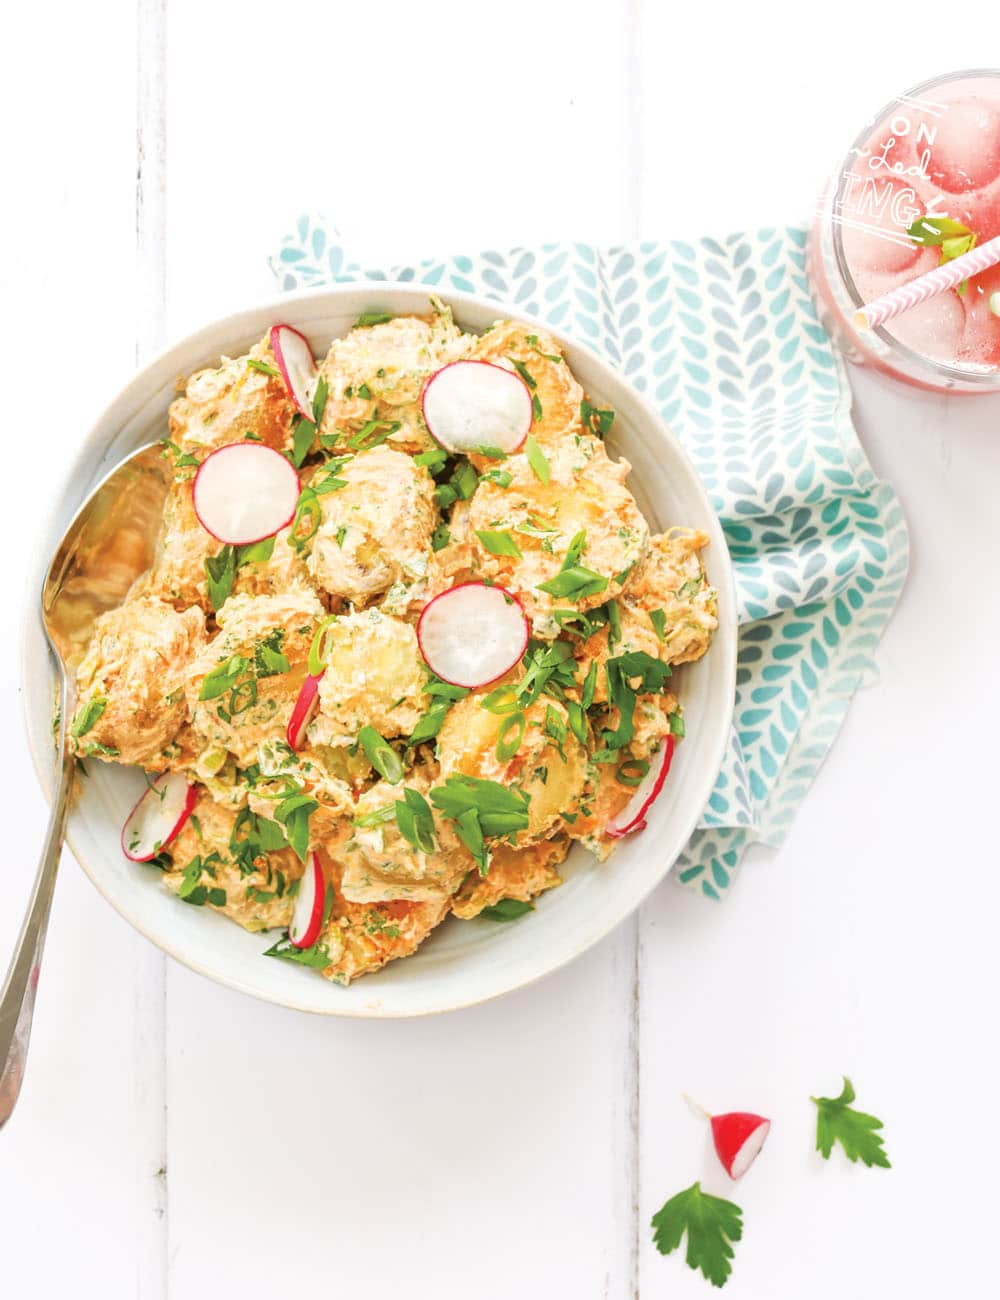 Easy baby led weaning side dish that is perfect to make ahead and super for a summer side dish. No mayo potato salad is made with healthy yogurt and seasoned with spring onions, lemons, apple cider vinegar and topped with zesty radishes. #healthysides #babyledweaning #potatosalad #makeahead #babyledfeeding #toddlerfood